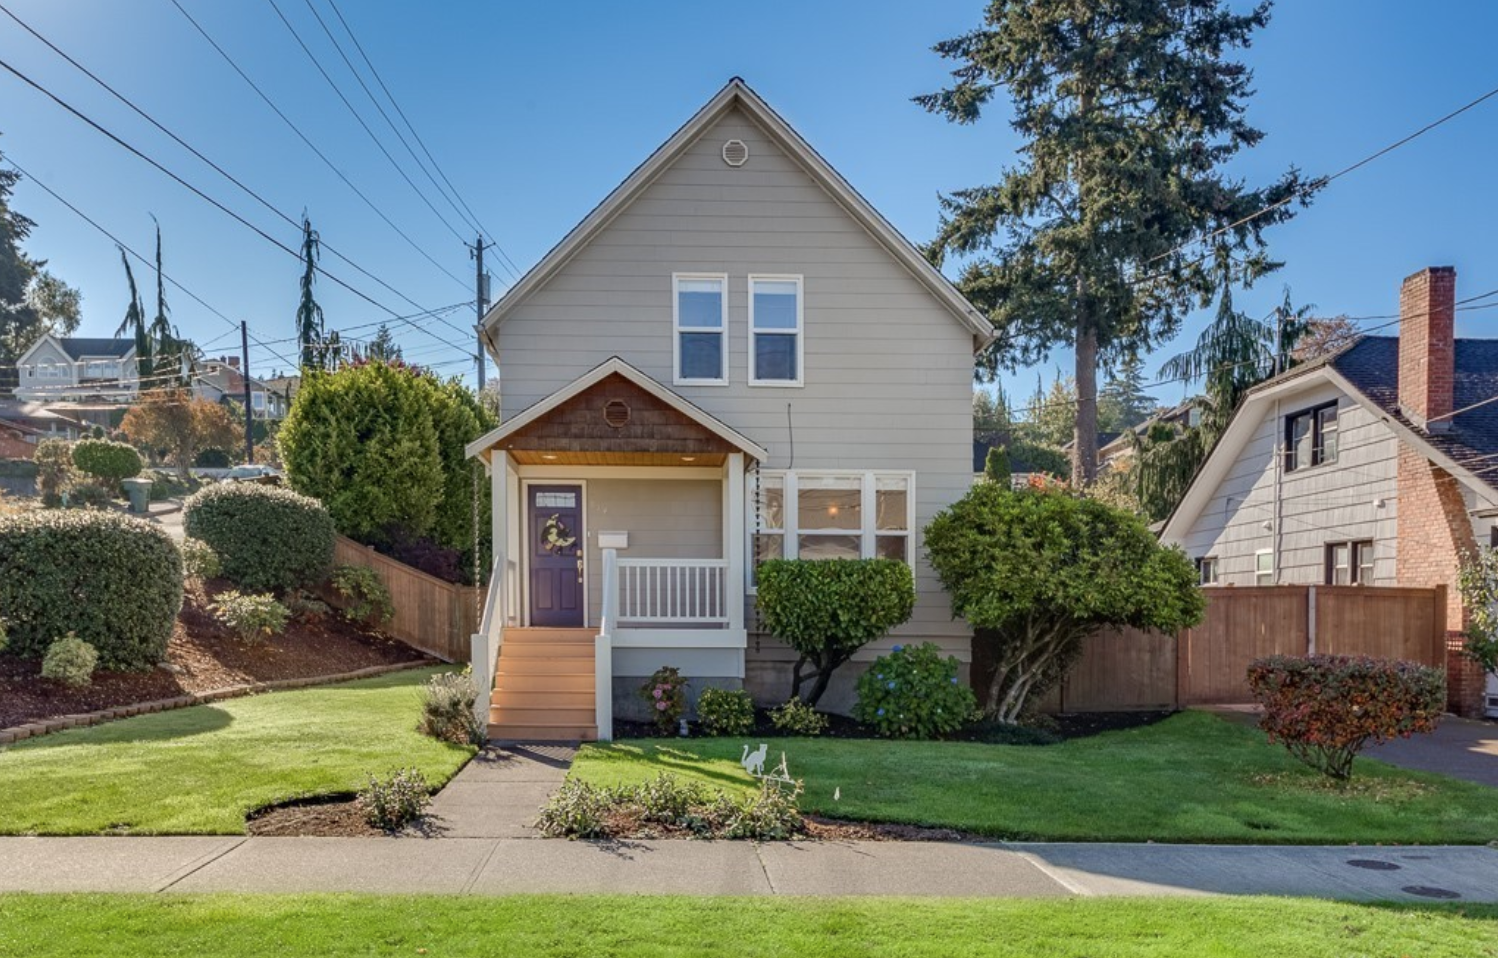 814 33rd Street - Everett, WA // SOLD